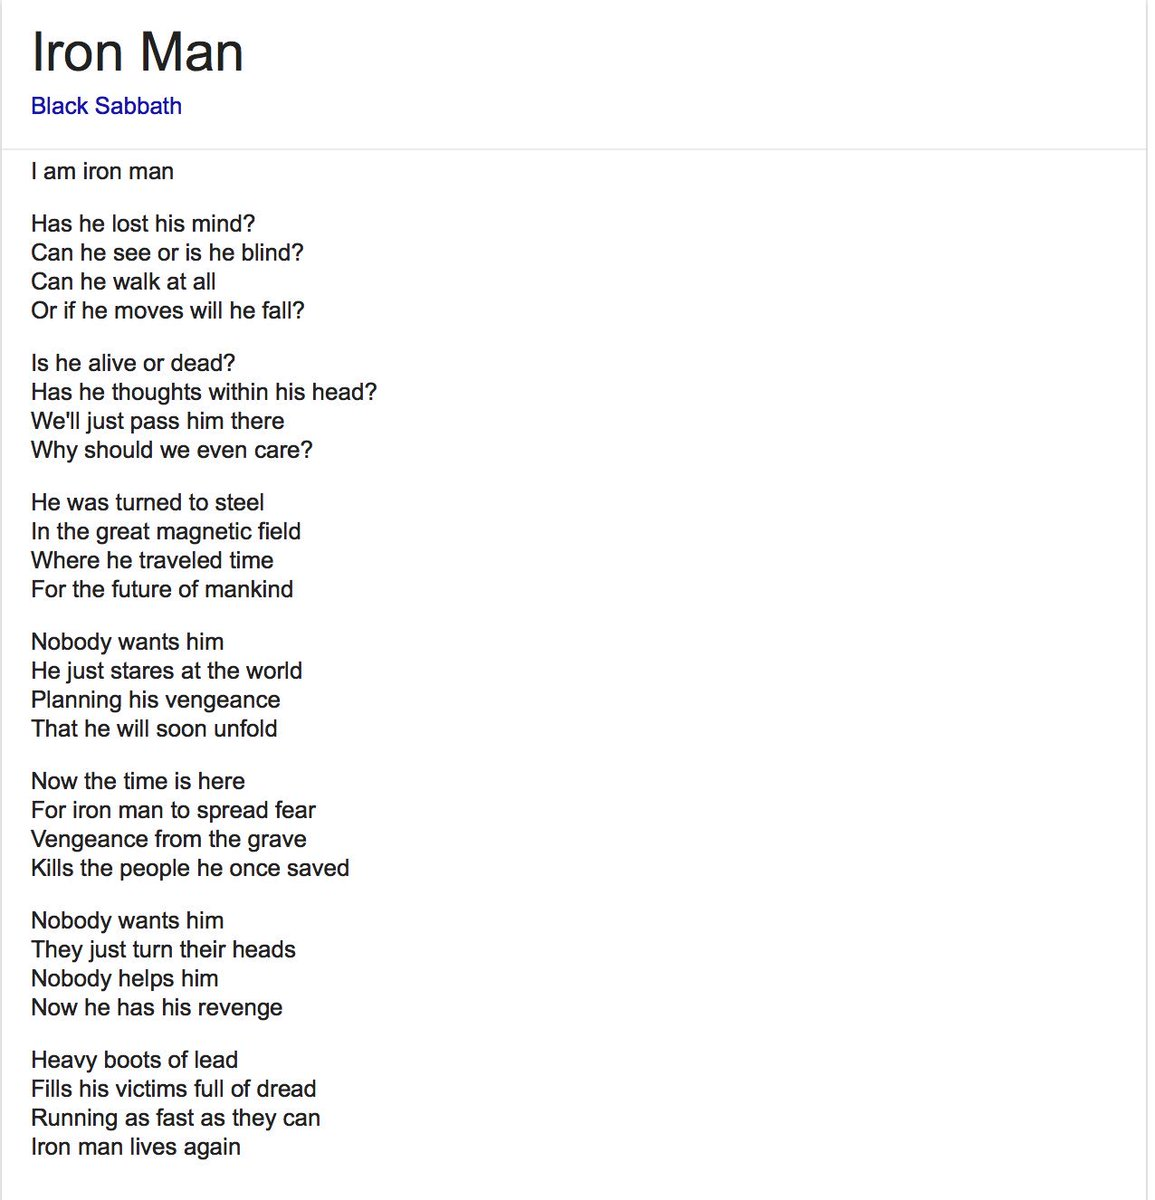 Iron Man - Black Sabbath